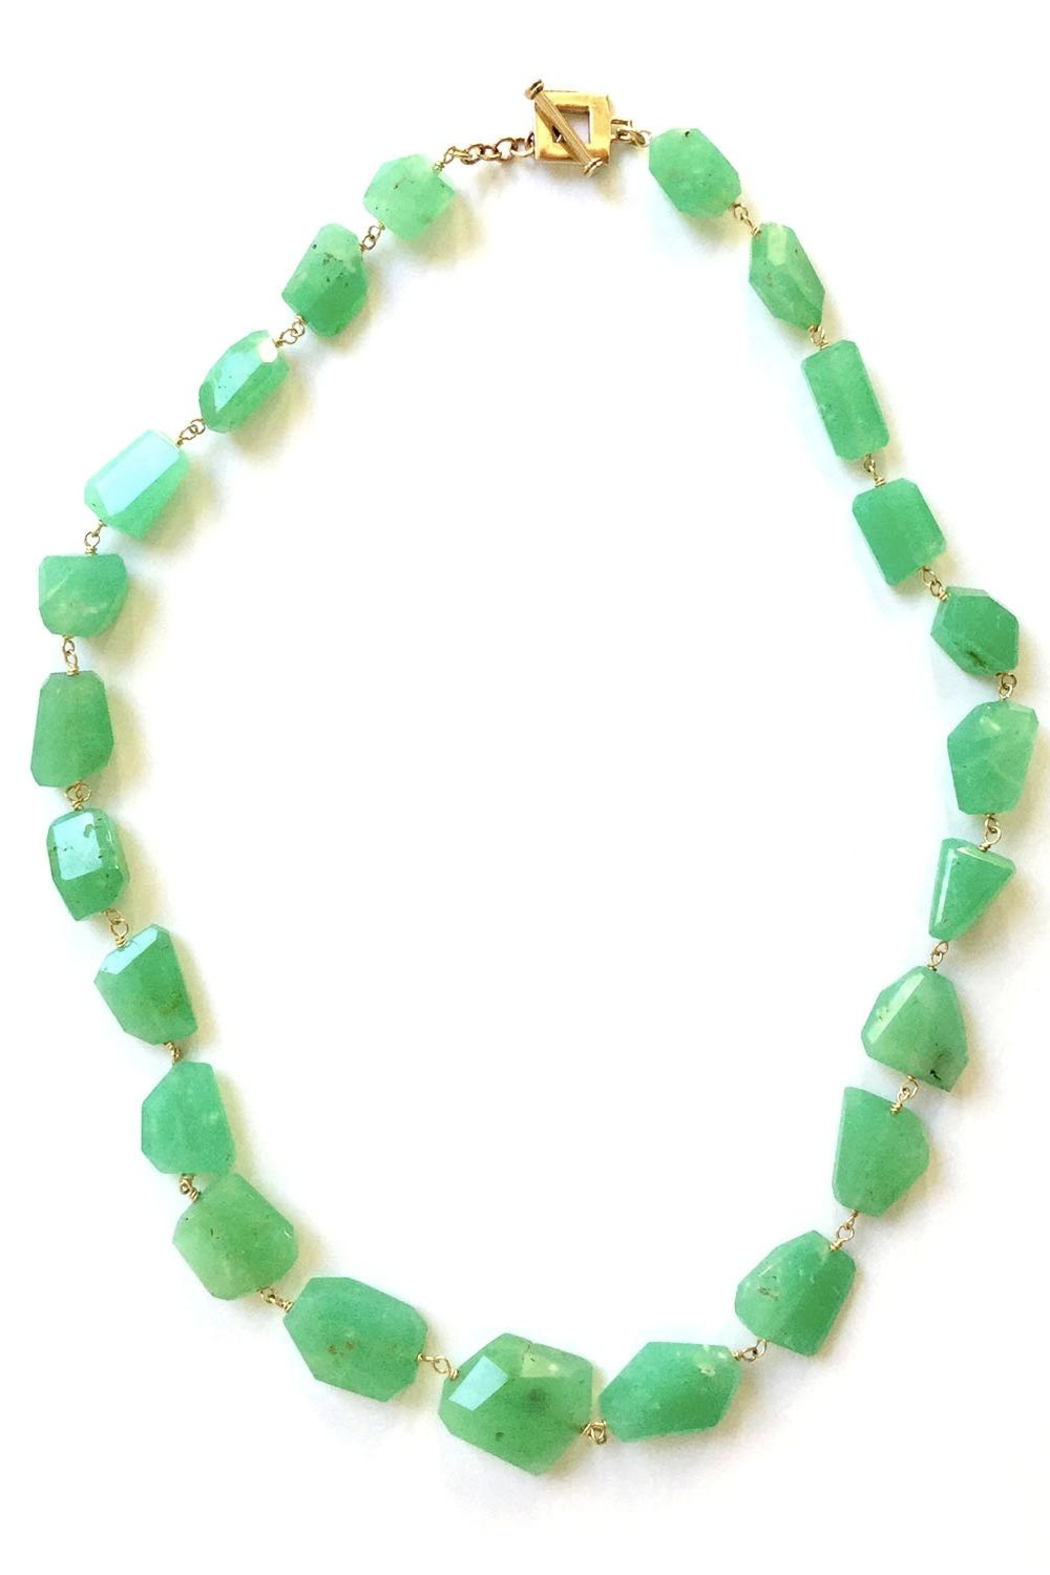 faceted necklaces courtney ii shop opal choker single necklace chrysoprase strand toggle inlay